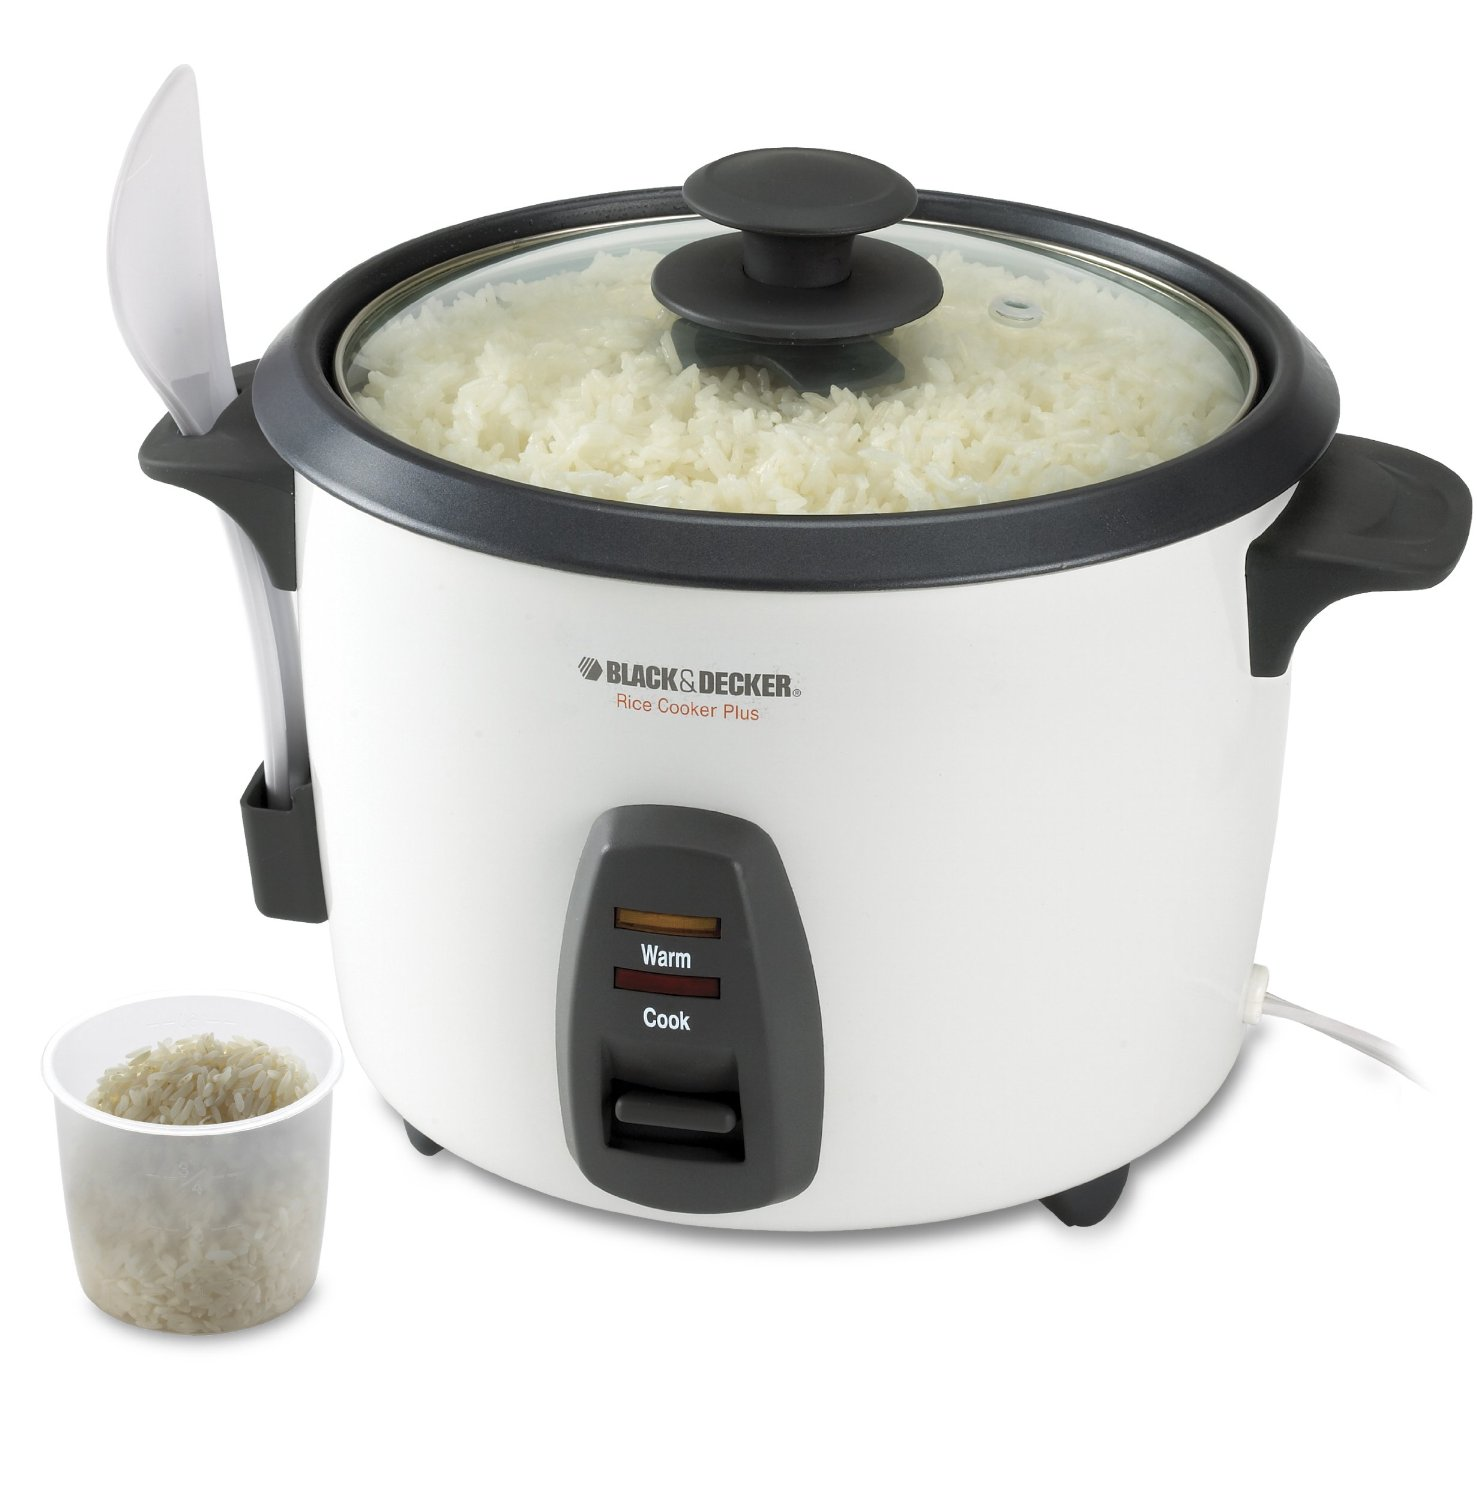 Black Decker Rc436 16 Cup Rice Cooker White Kentuckiana Trading Llc 44681a